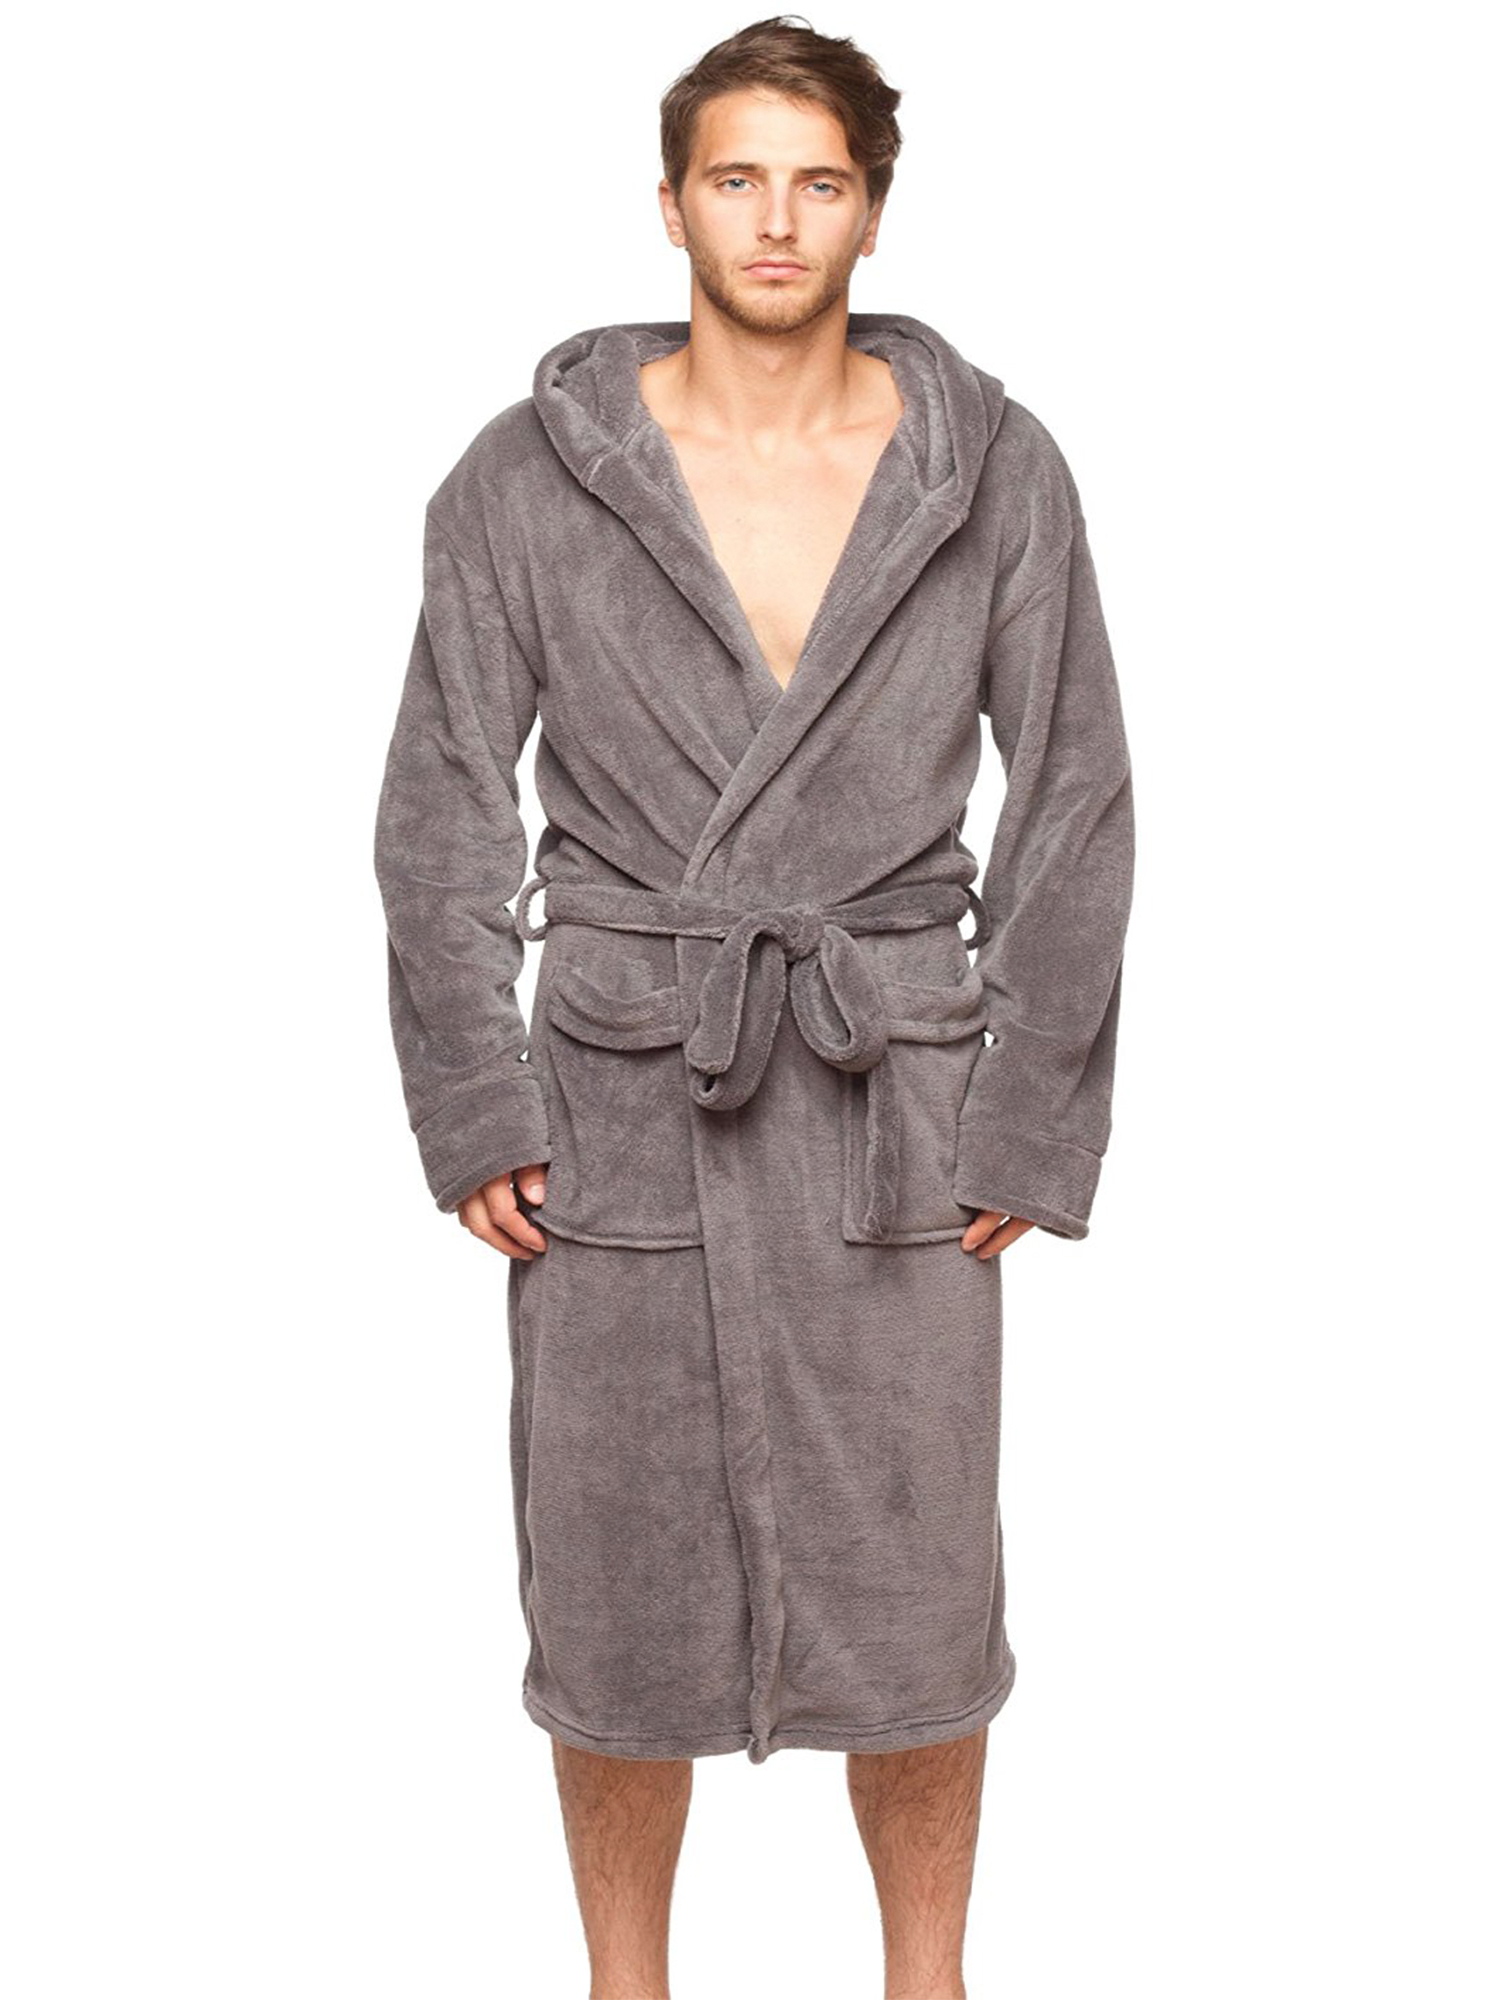 Robes Wanted Mens Lounge Bathrobe Plush Micro Fleece With Front Pockets Clothing Accessories